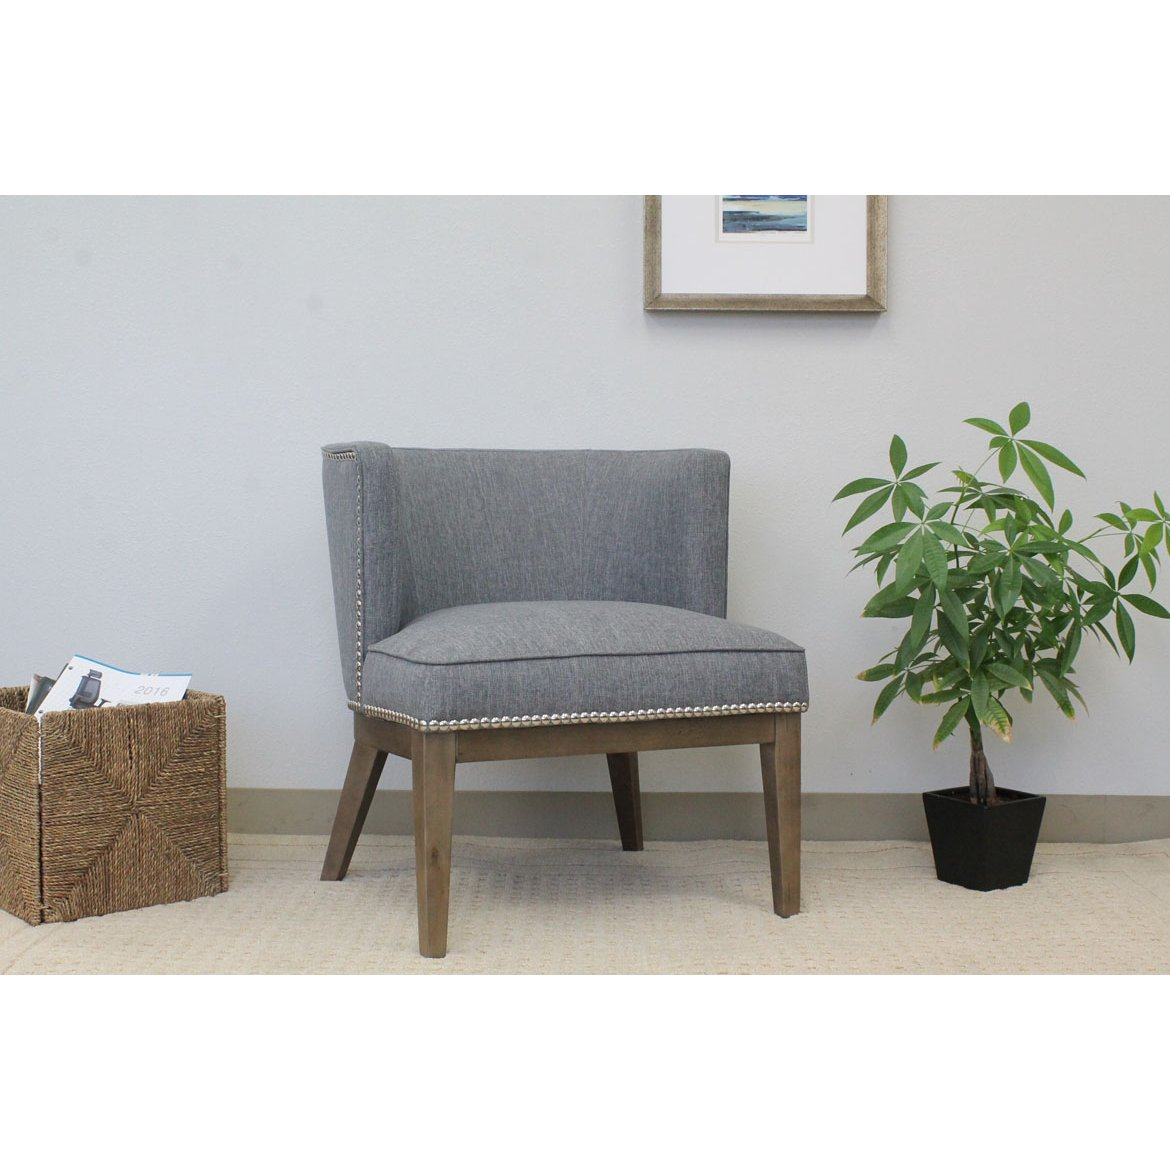 Beau Gray Oversized Accent Chair